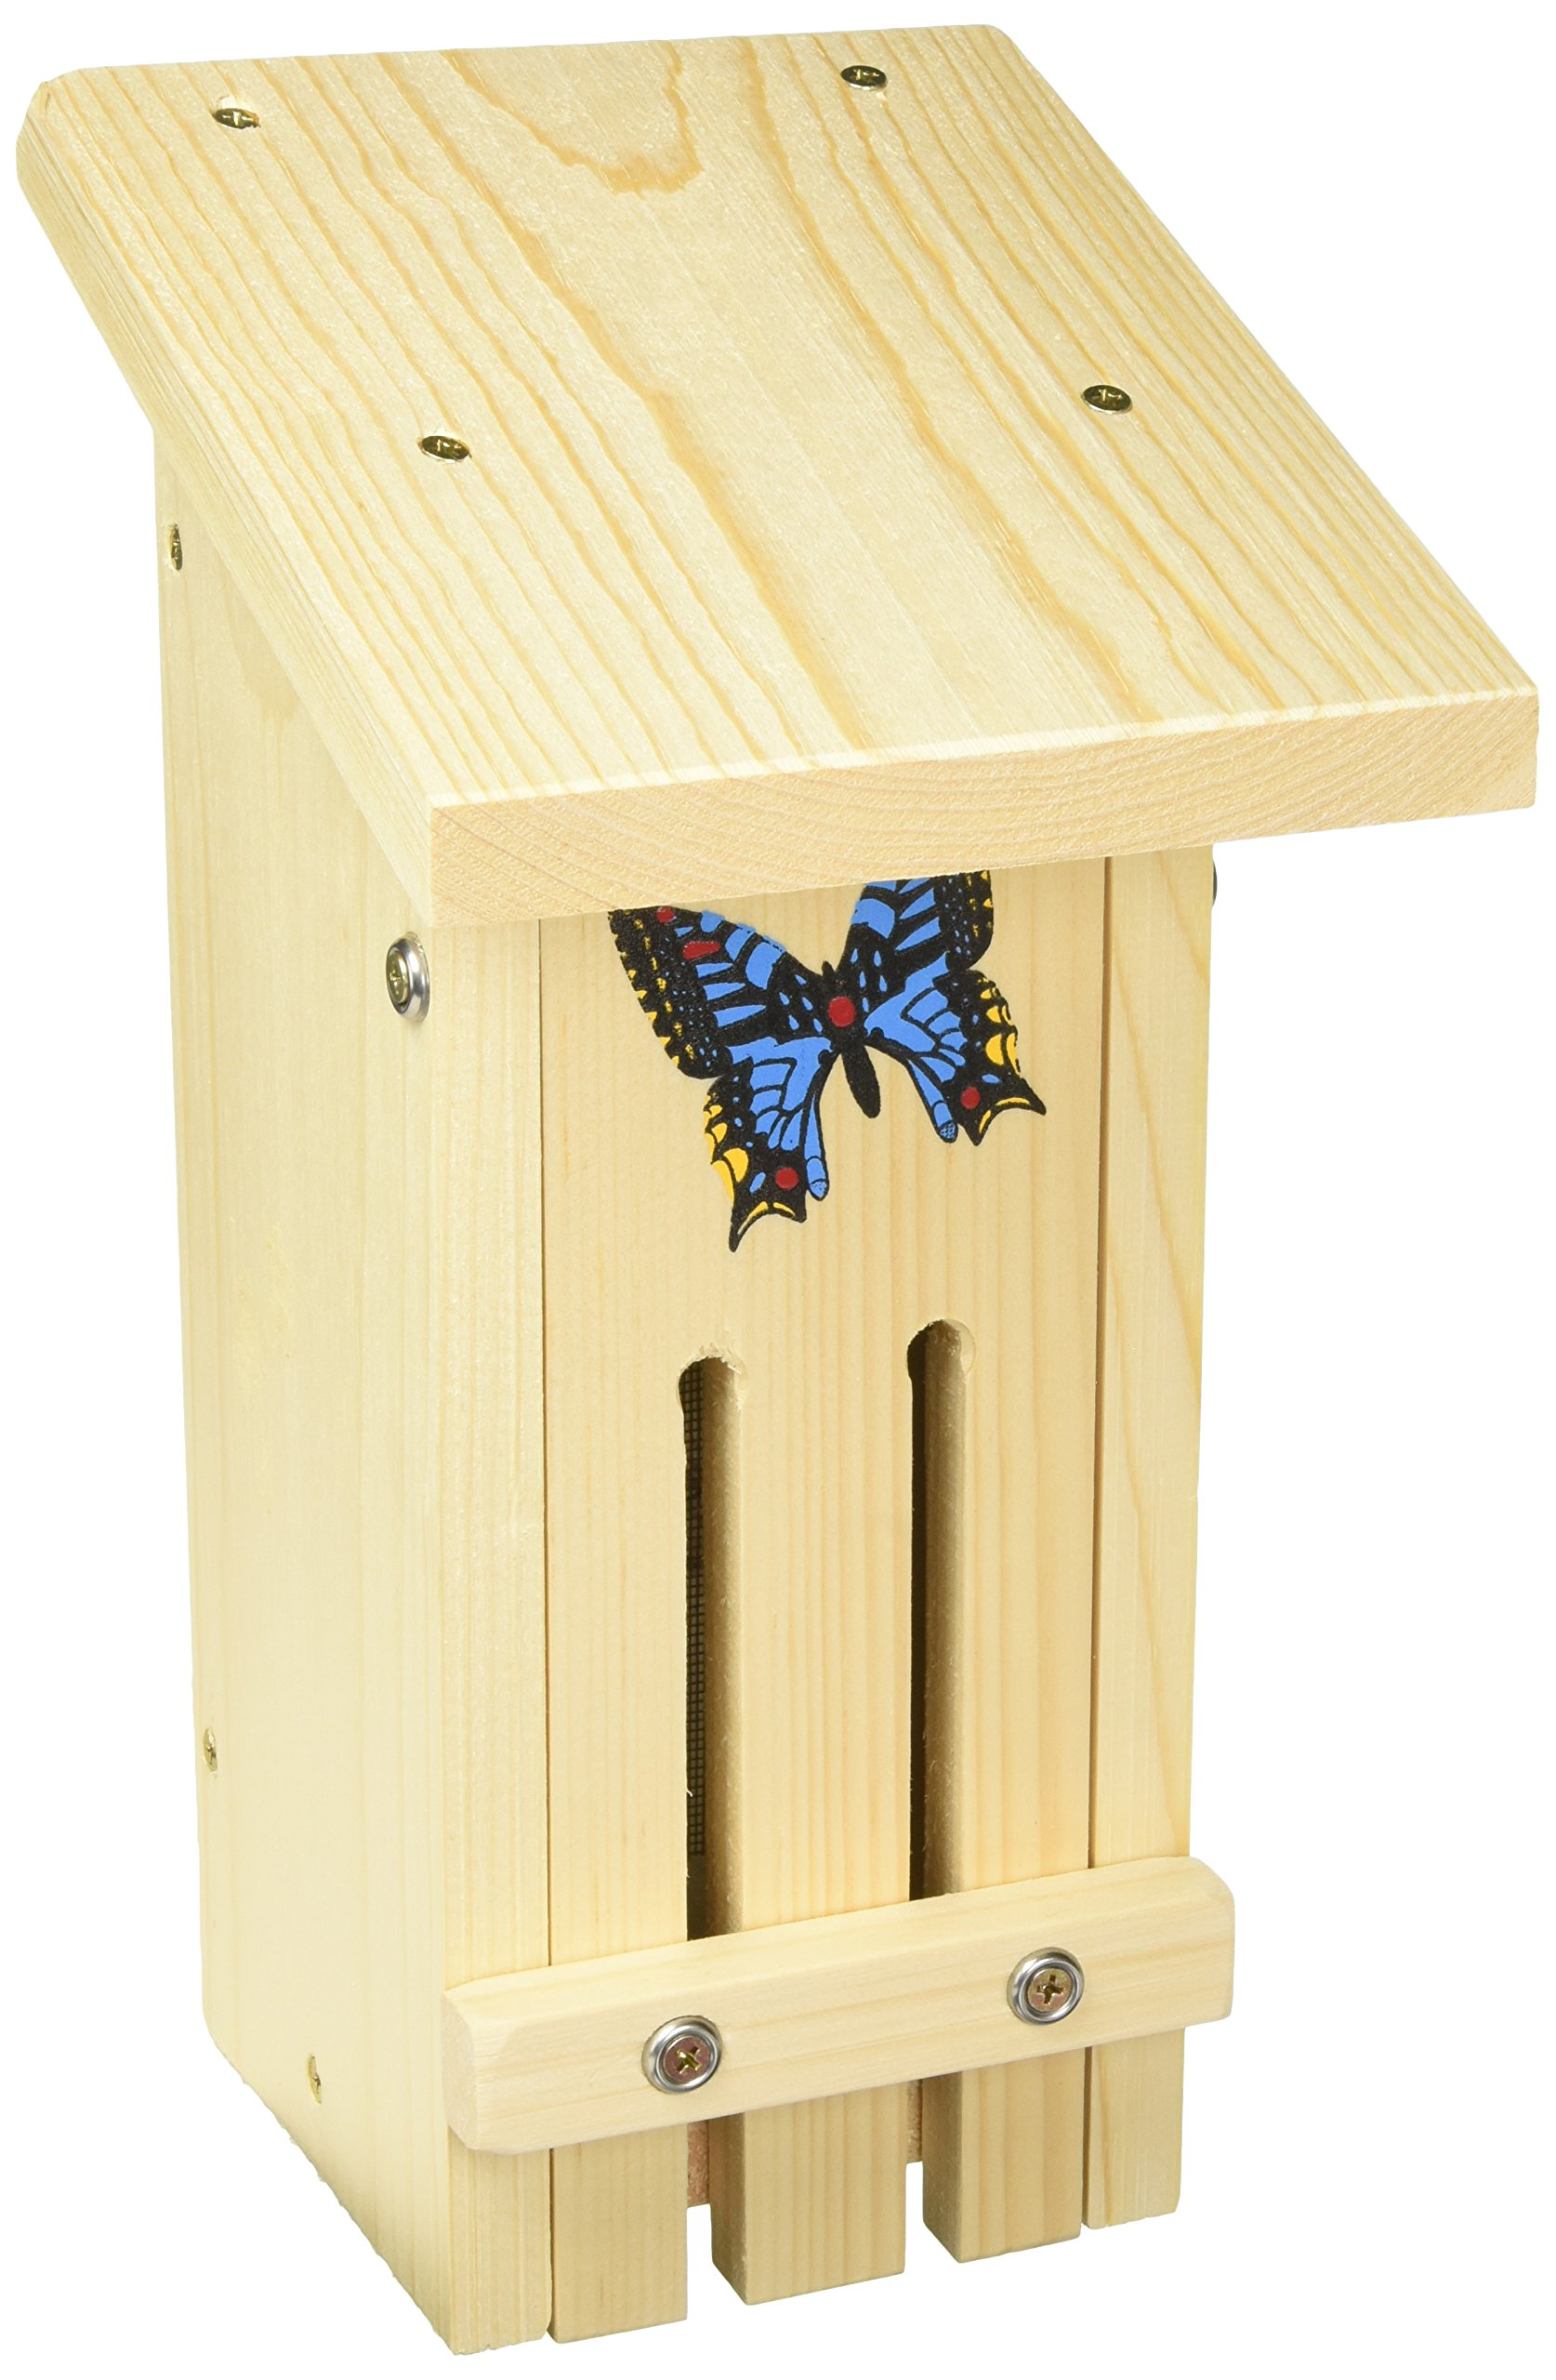 Stovall Products 14H Wood Small Butterfly Habitat by Stovall Products